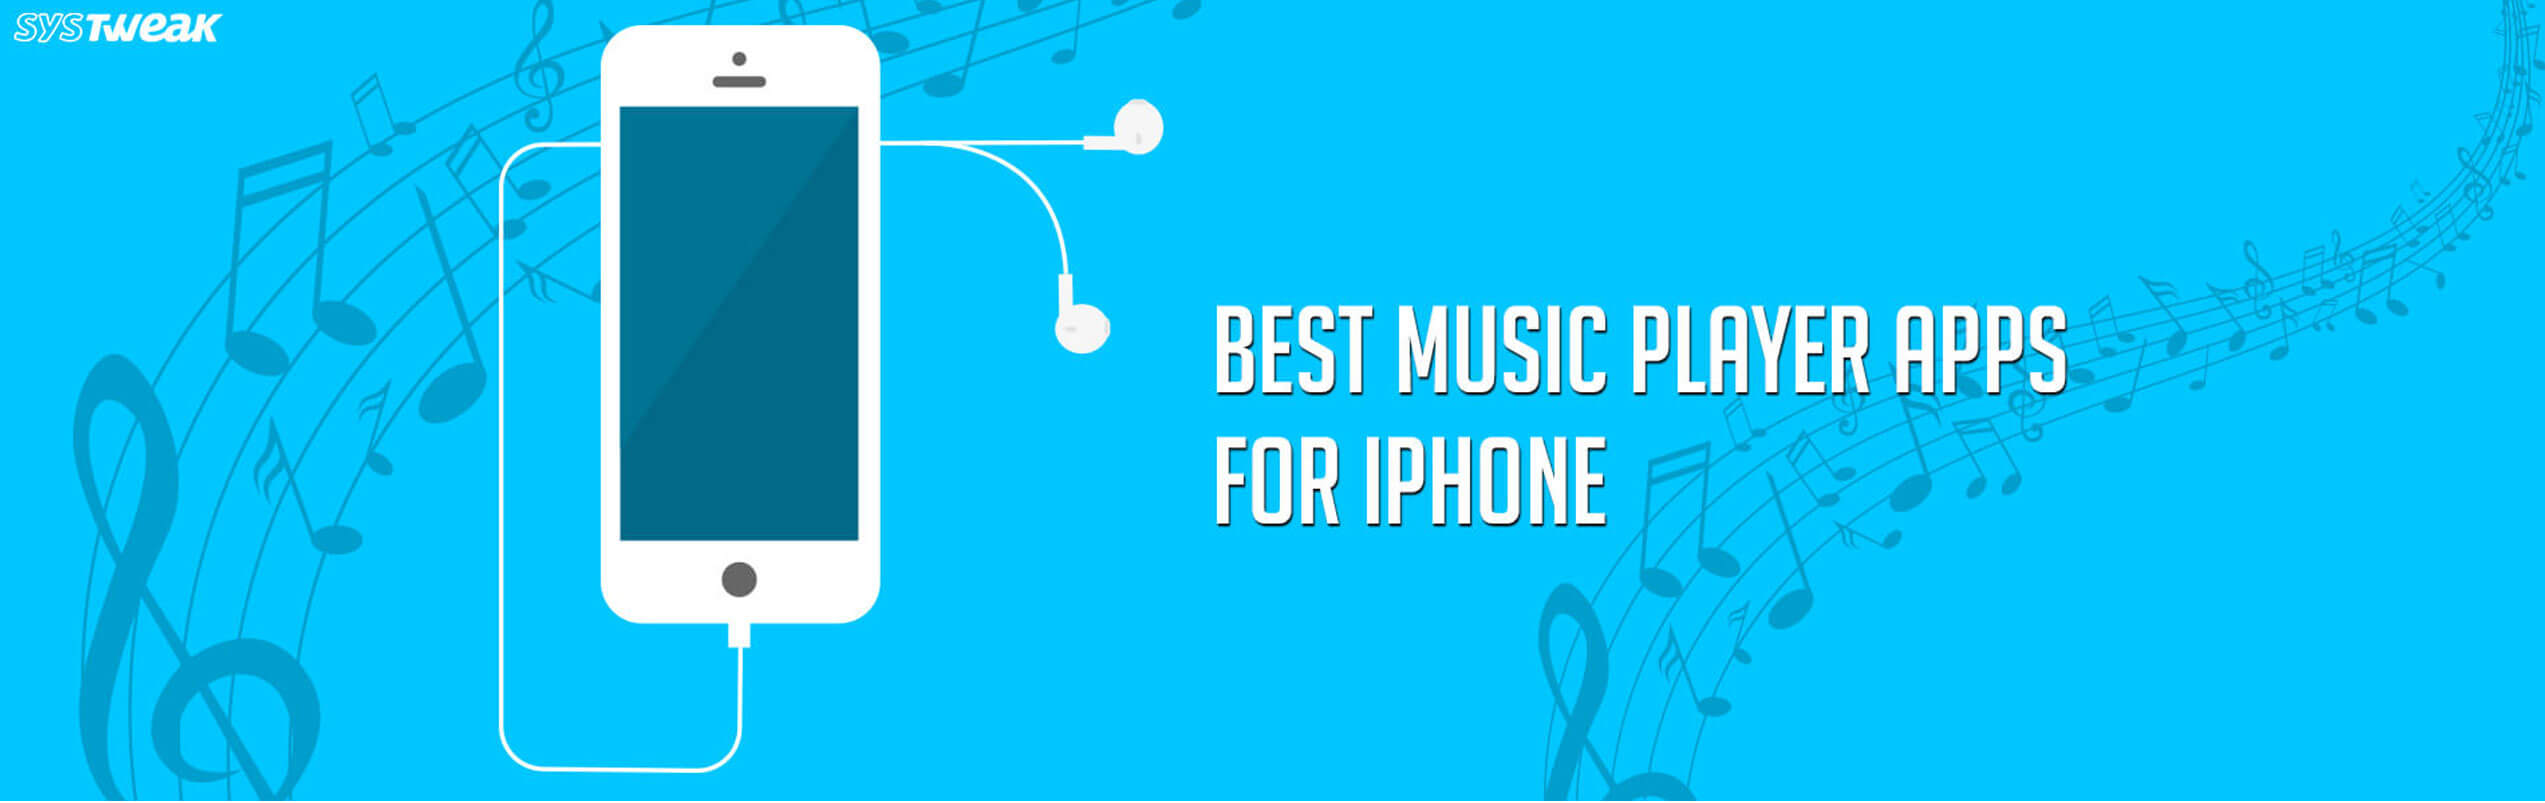 good music apps for iphone 10 best player apps for iphone in 2018 16998